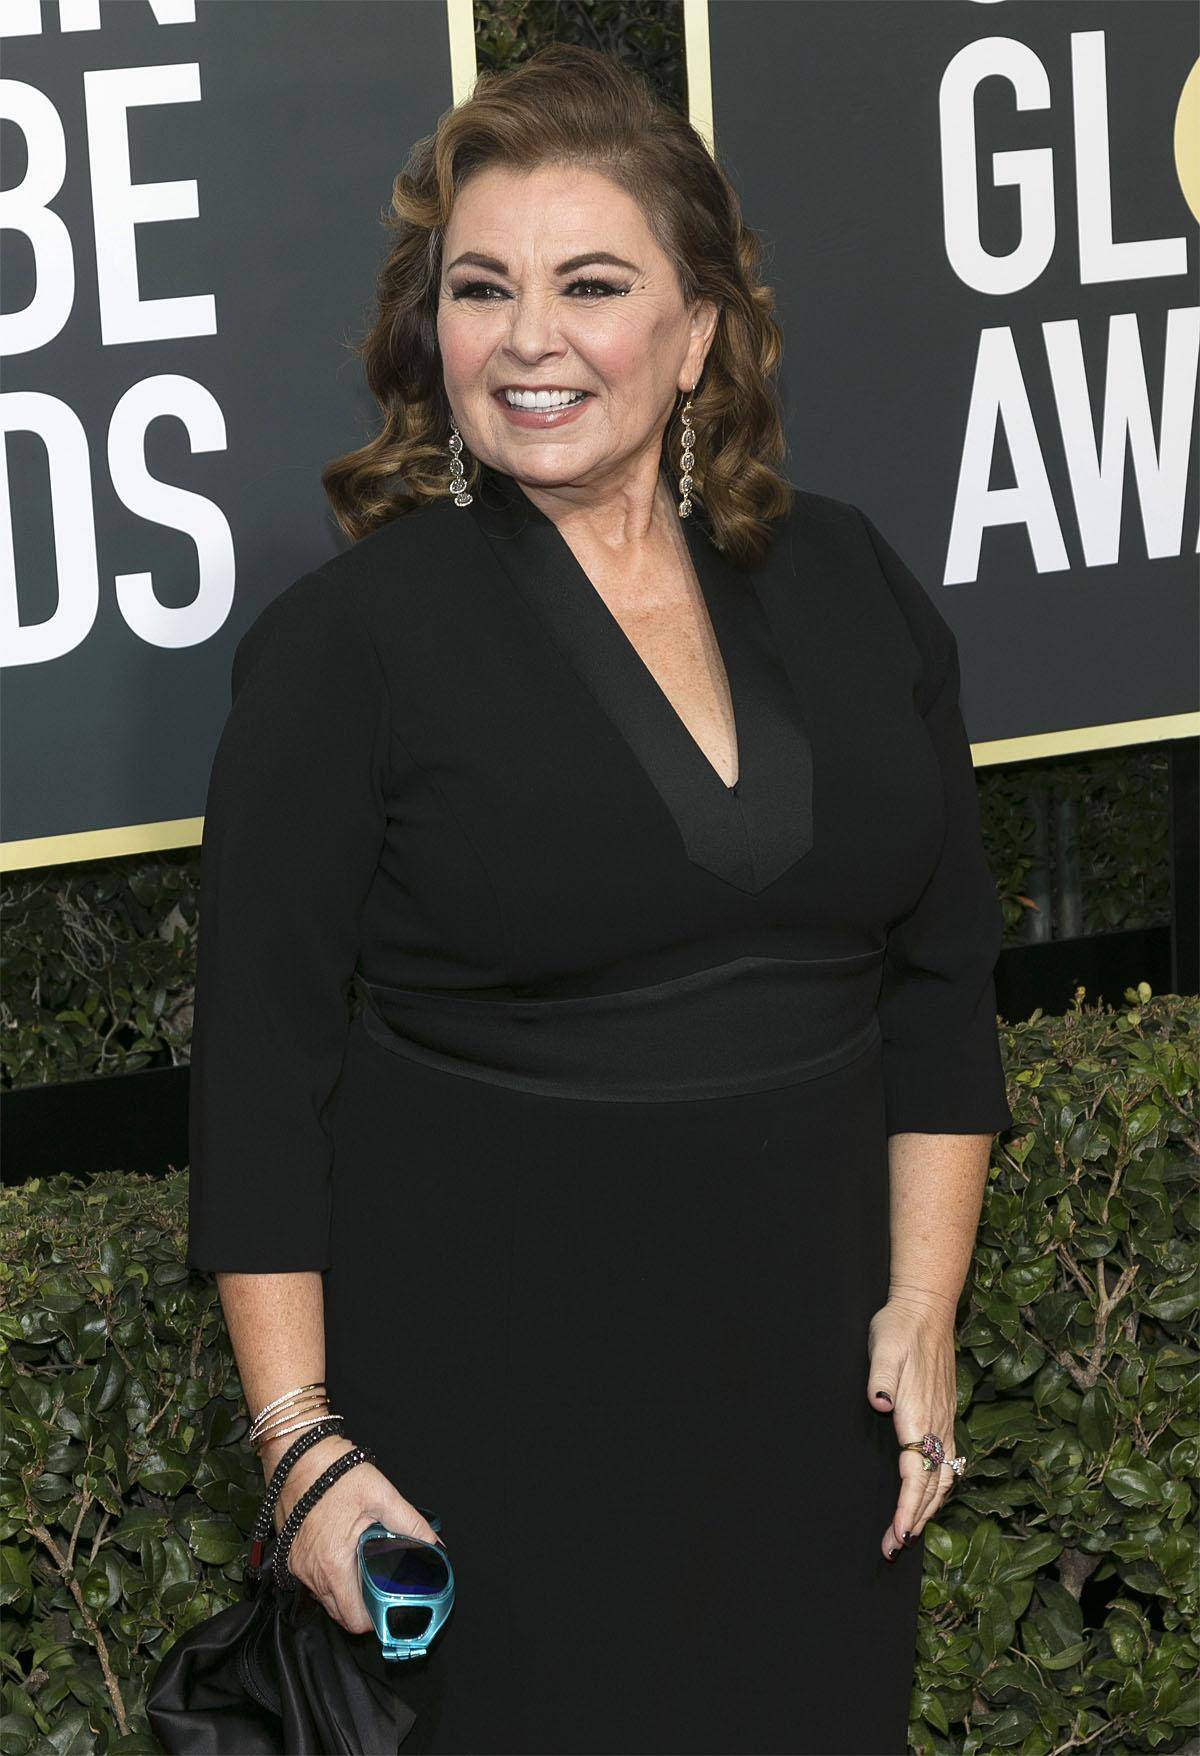 75th Golden Globe Awards held at the Beverly Hilton Hotel - Arrivals                                    Featuring: Roseanne Barr                  Where: Los Angeles, California, United States                  When: 07 Jan 2018                  Credit: WENN.com                                    **Not available for publication in Germany**